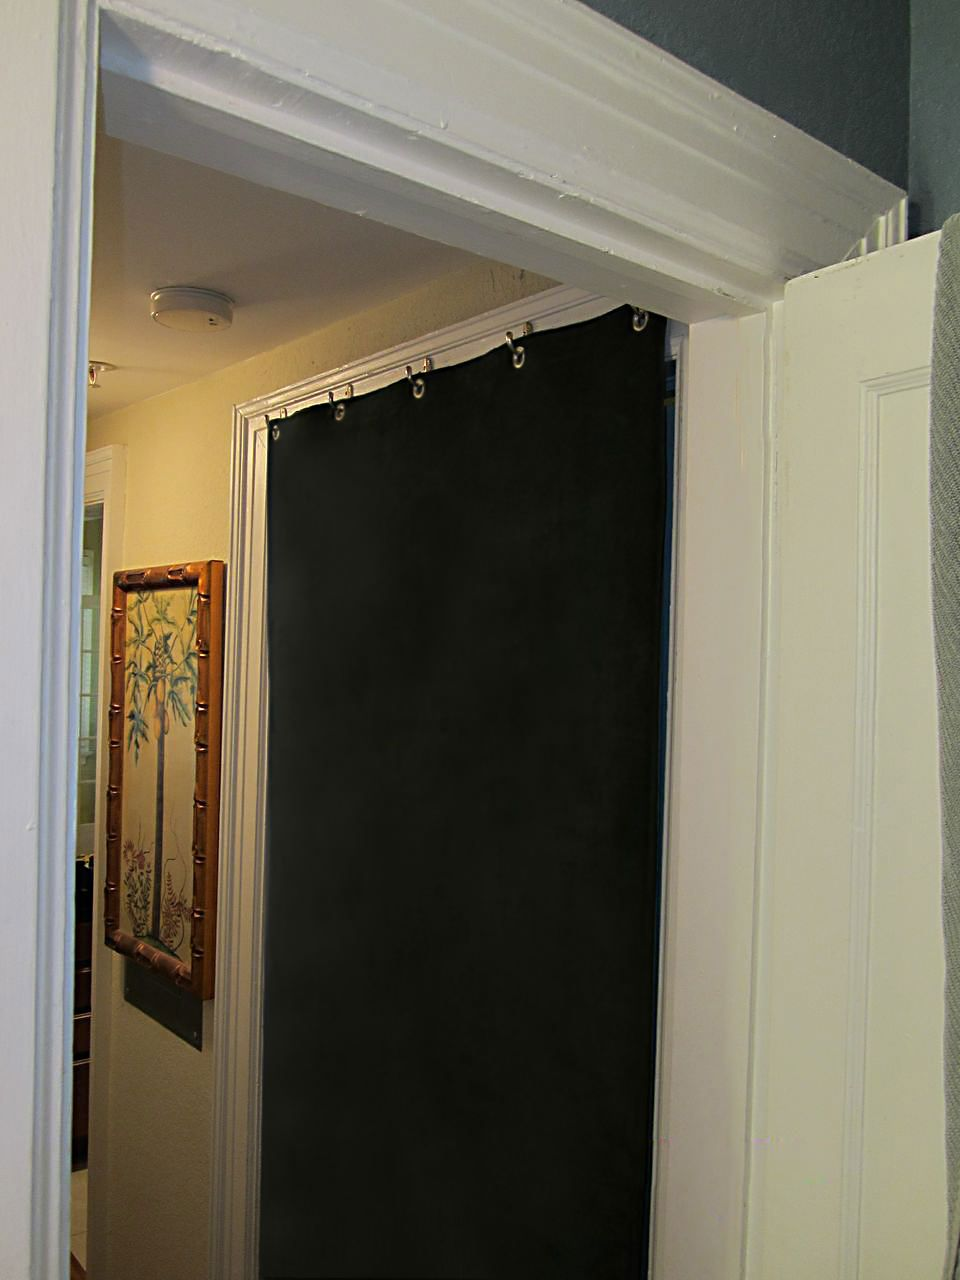 The Acoustidoor Home Ideas Sound Proofing Door Sound